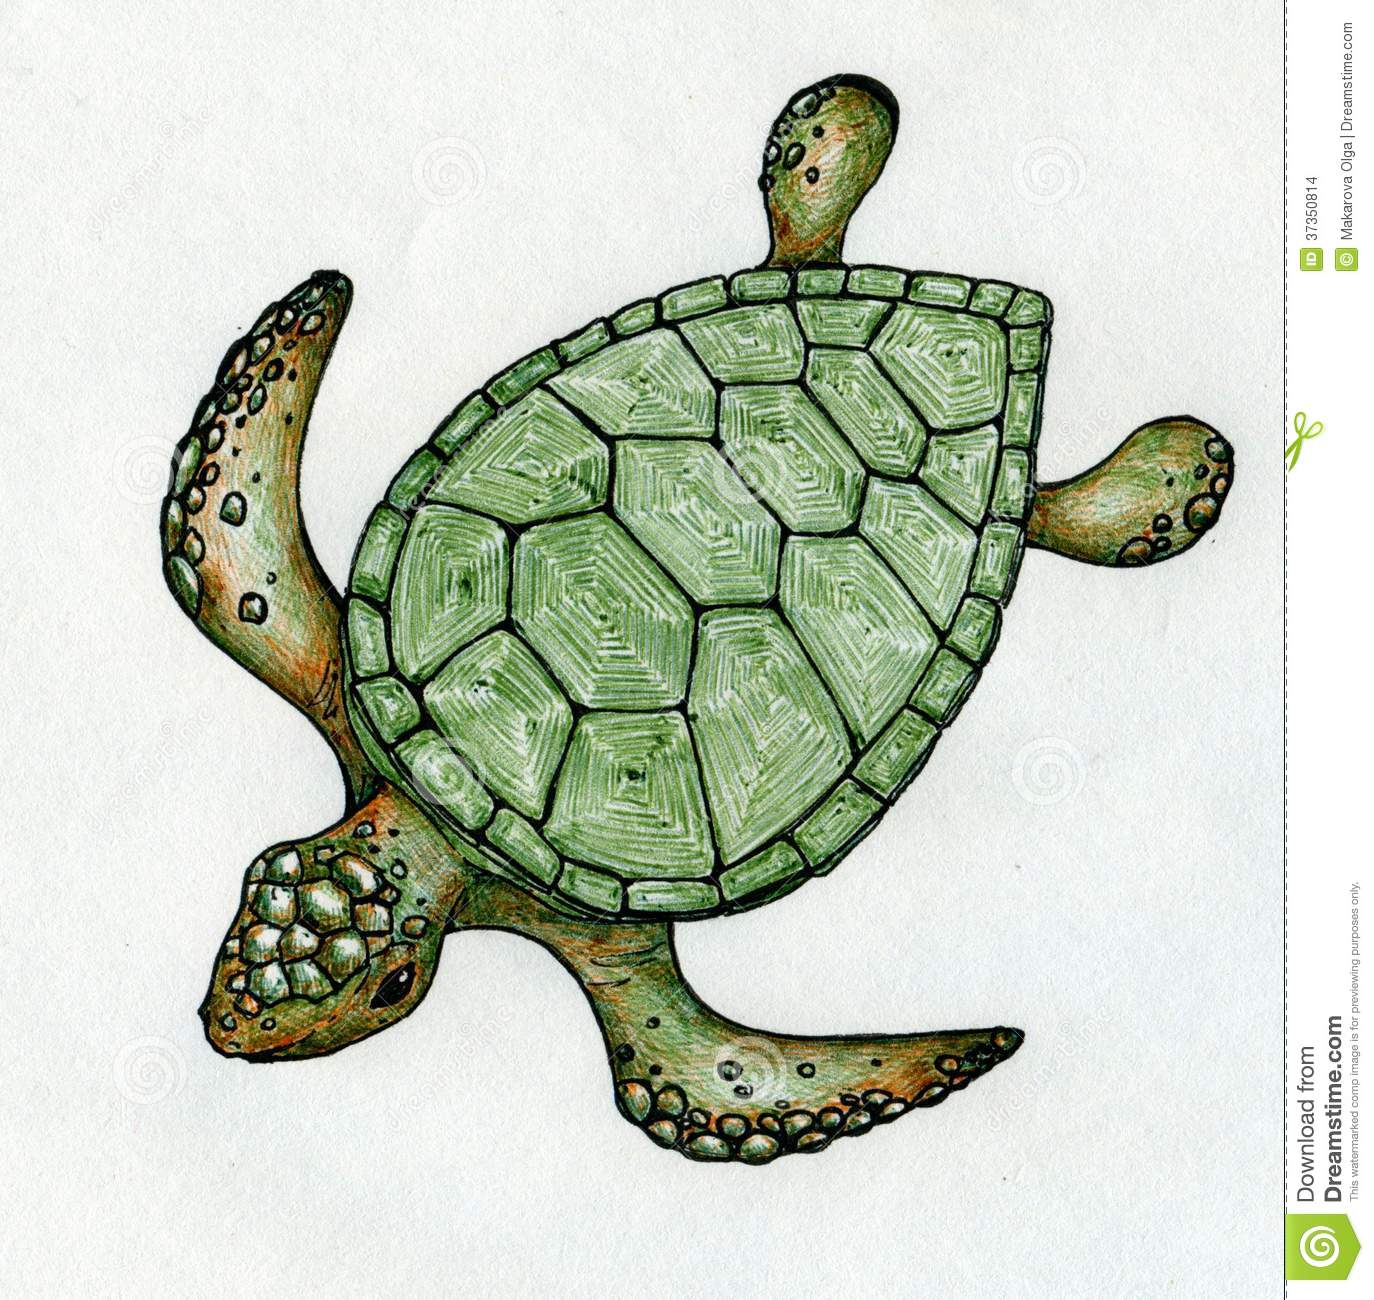 Drawn shell pen drawing Turtle Swimming Drawing Shell Of